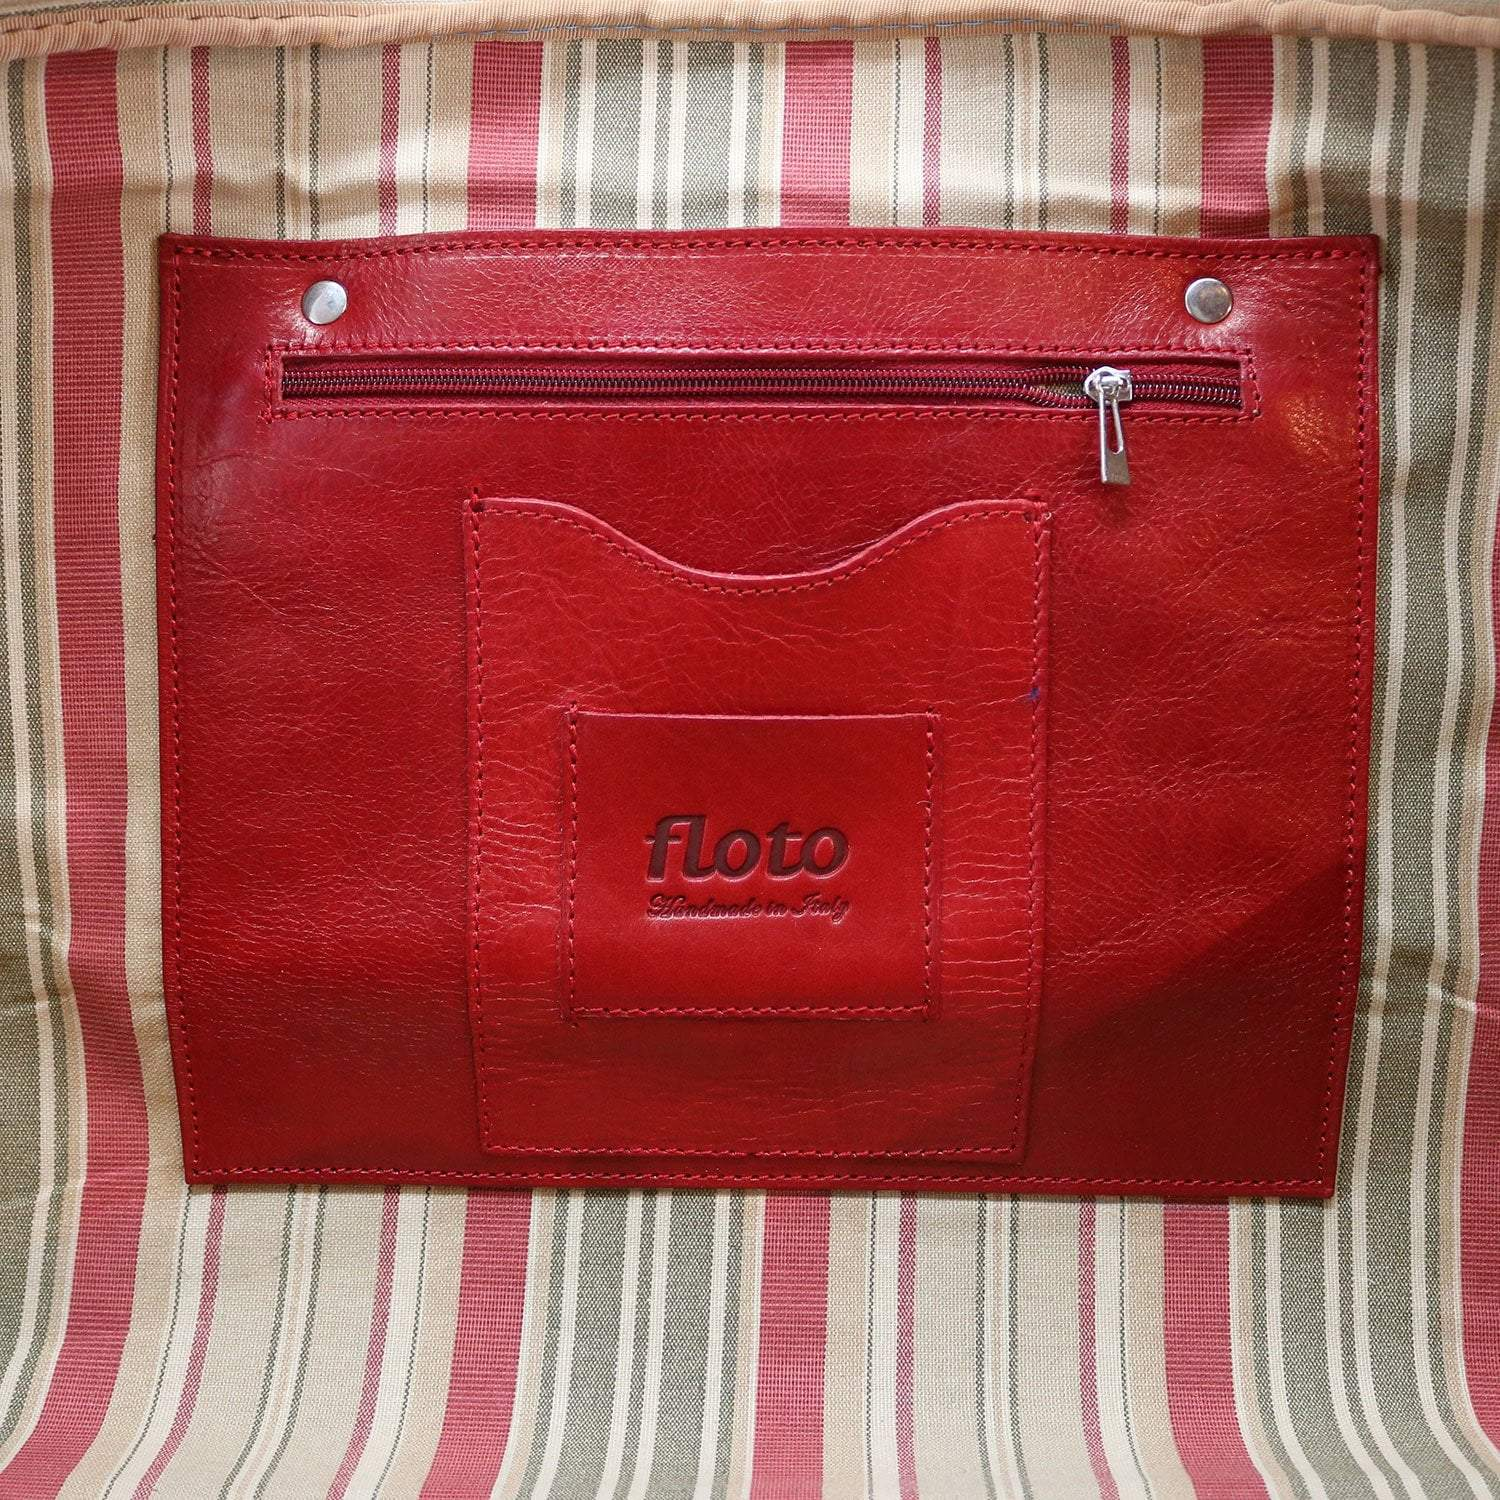 Floto Venezia Leather Travel Duffle Bag 2.0 - Tuscan Red showing Detail View of Inside Tag